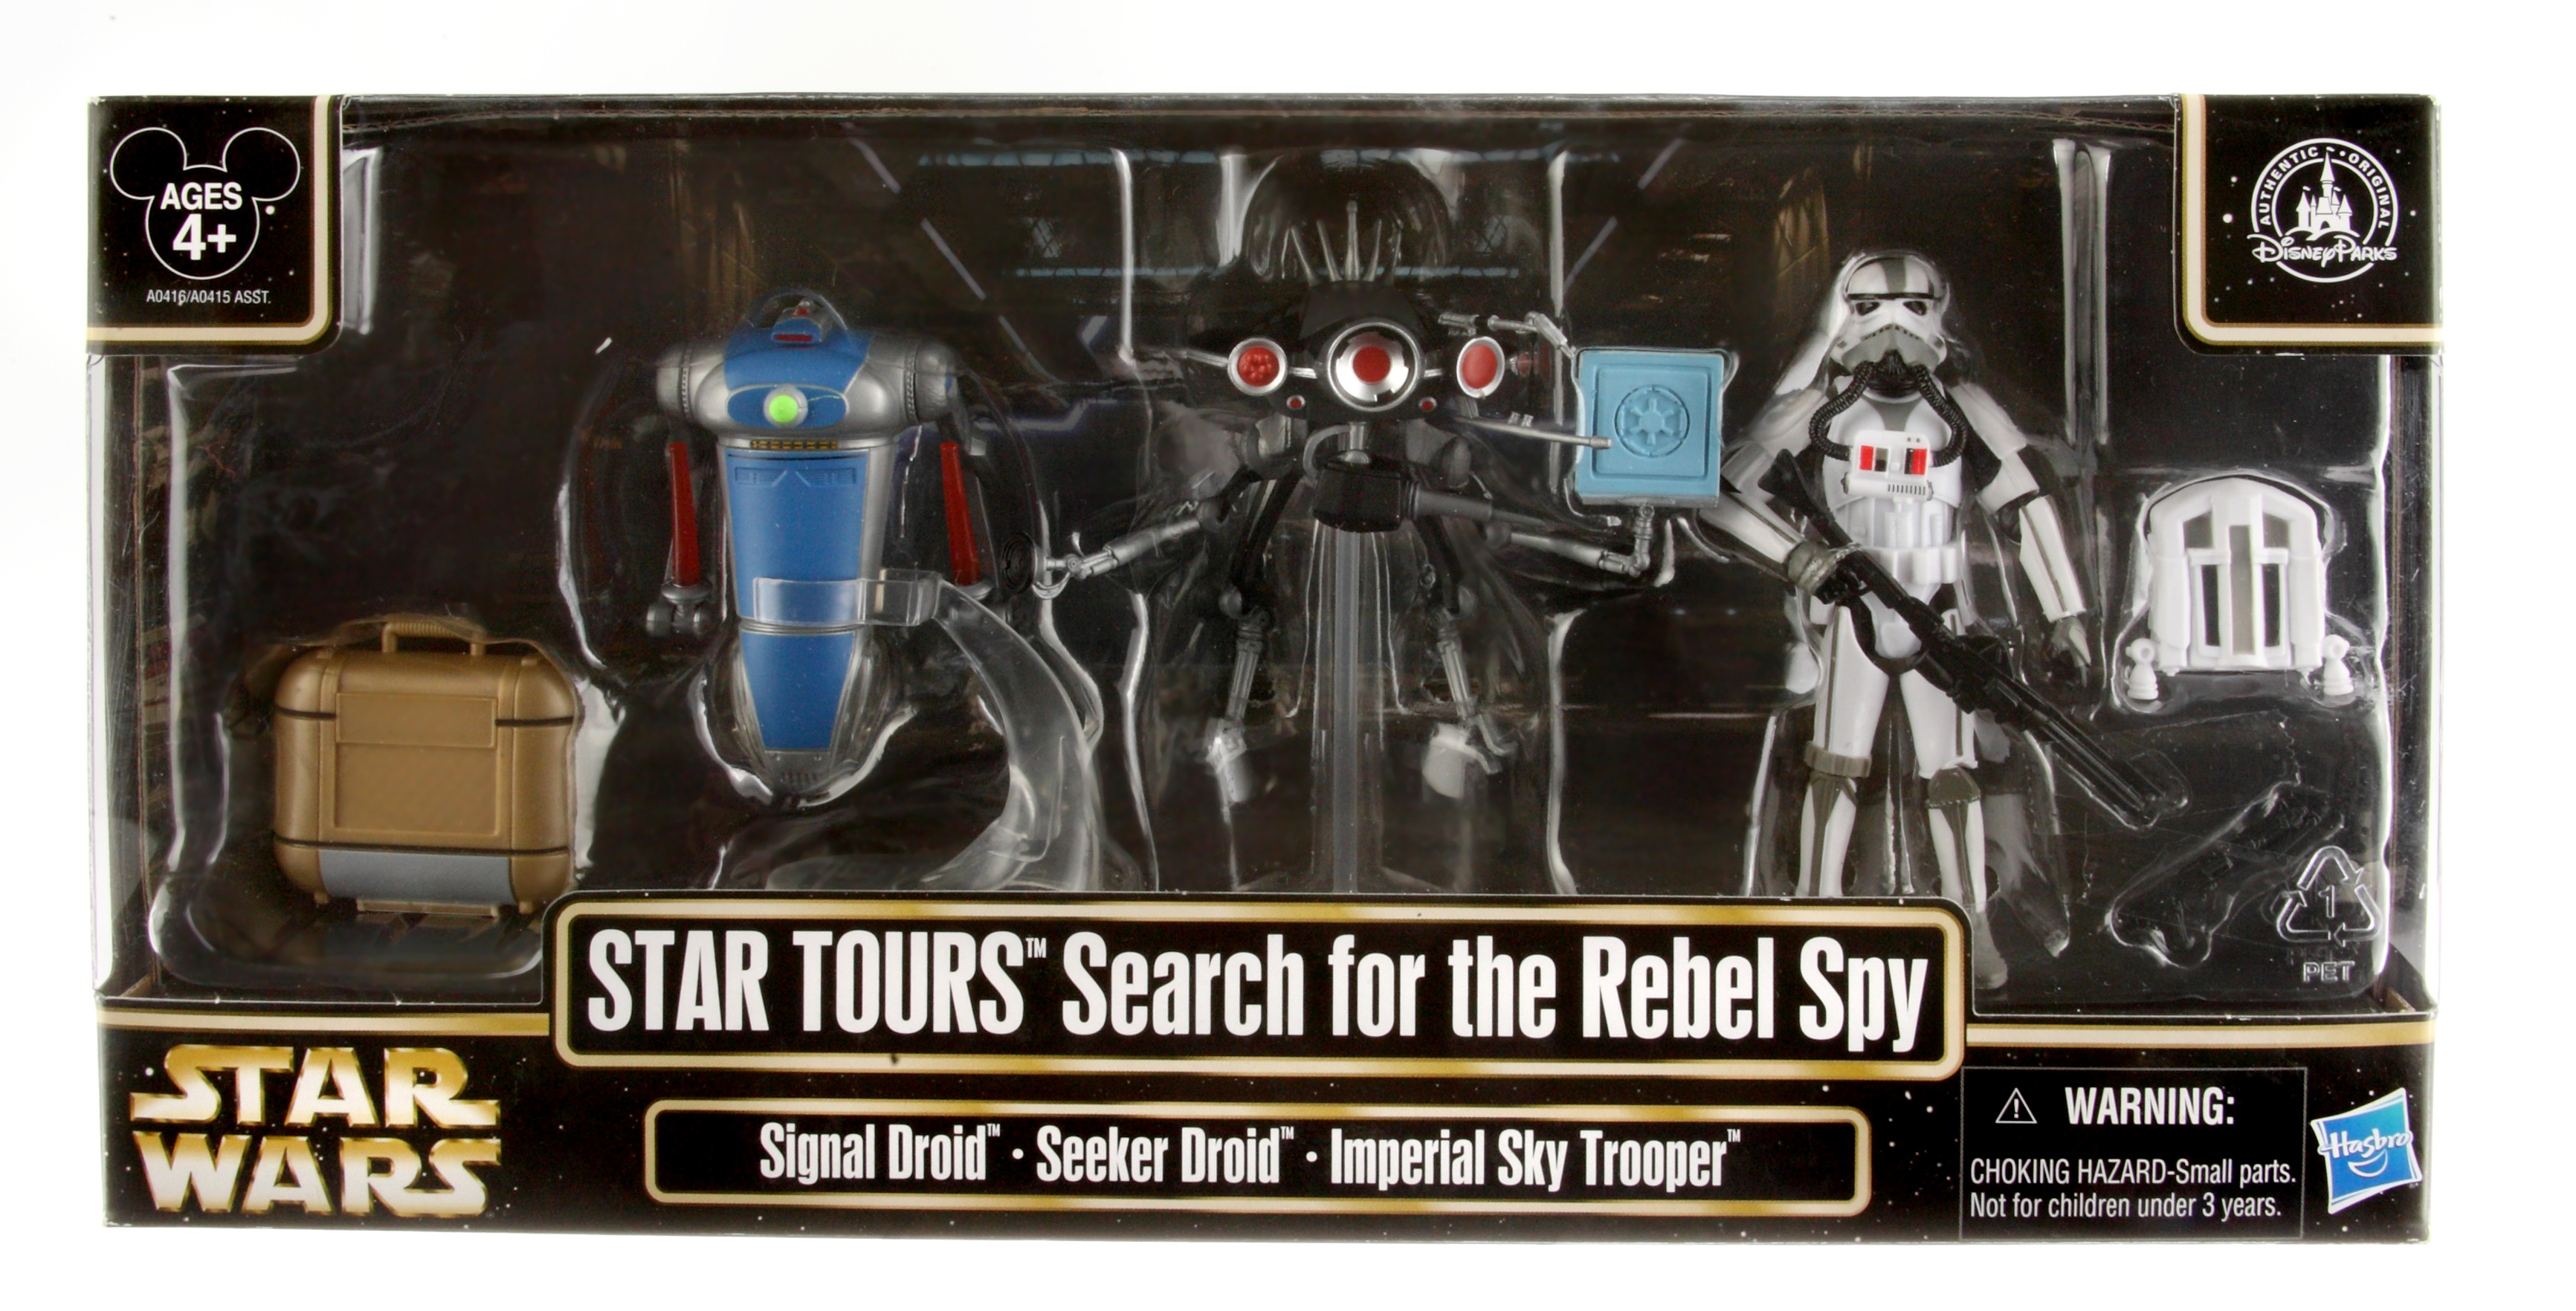 TOYS Disney announces park exclusive Star Wars figures — Major